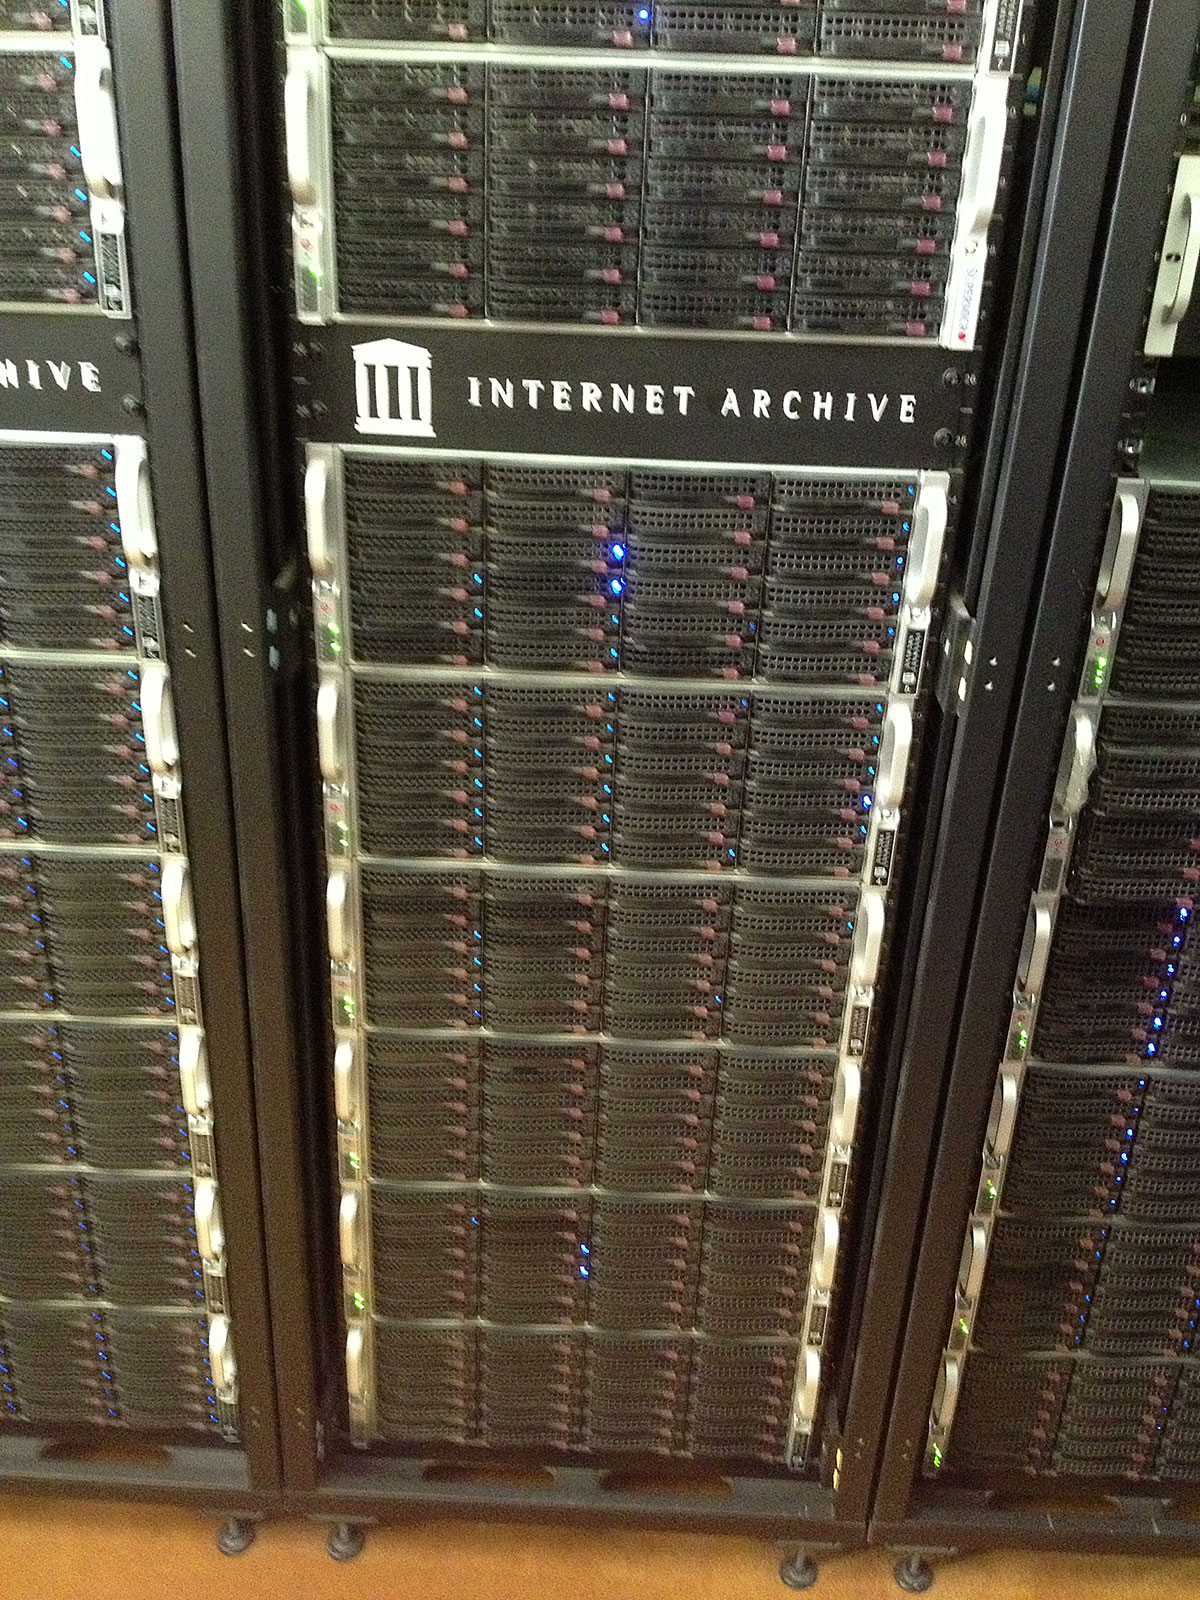 Servers at the Internet Archive